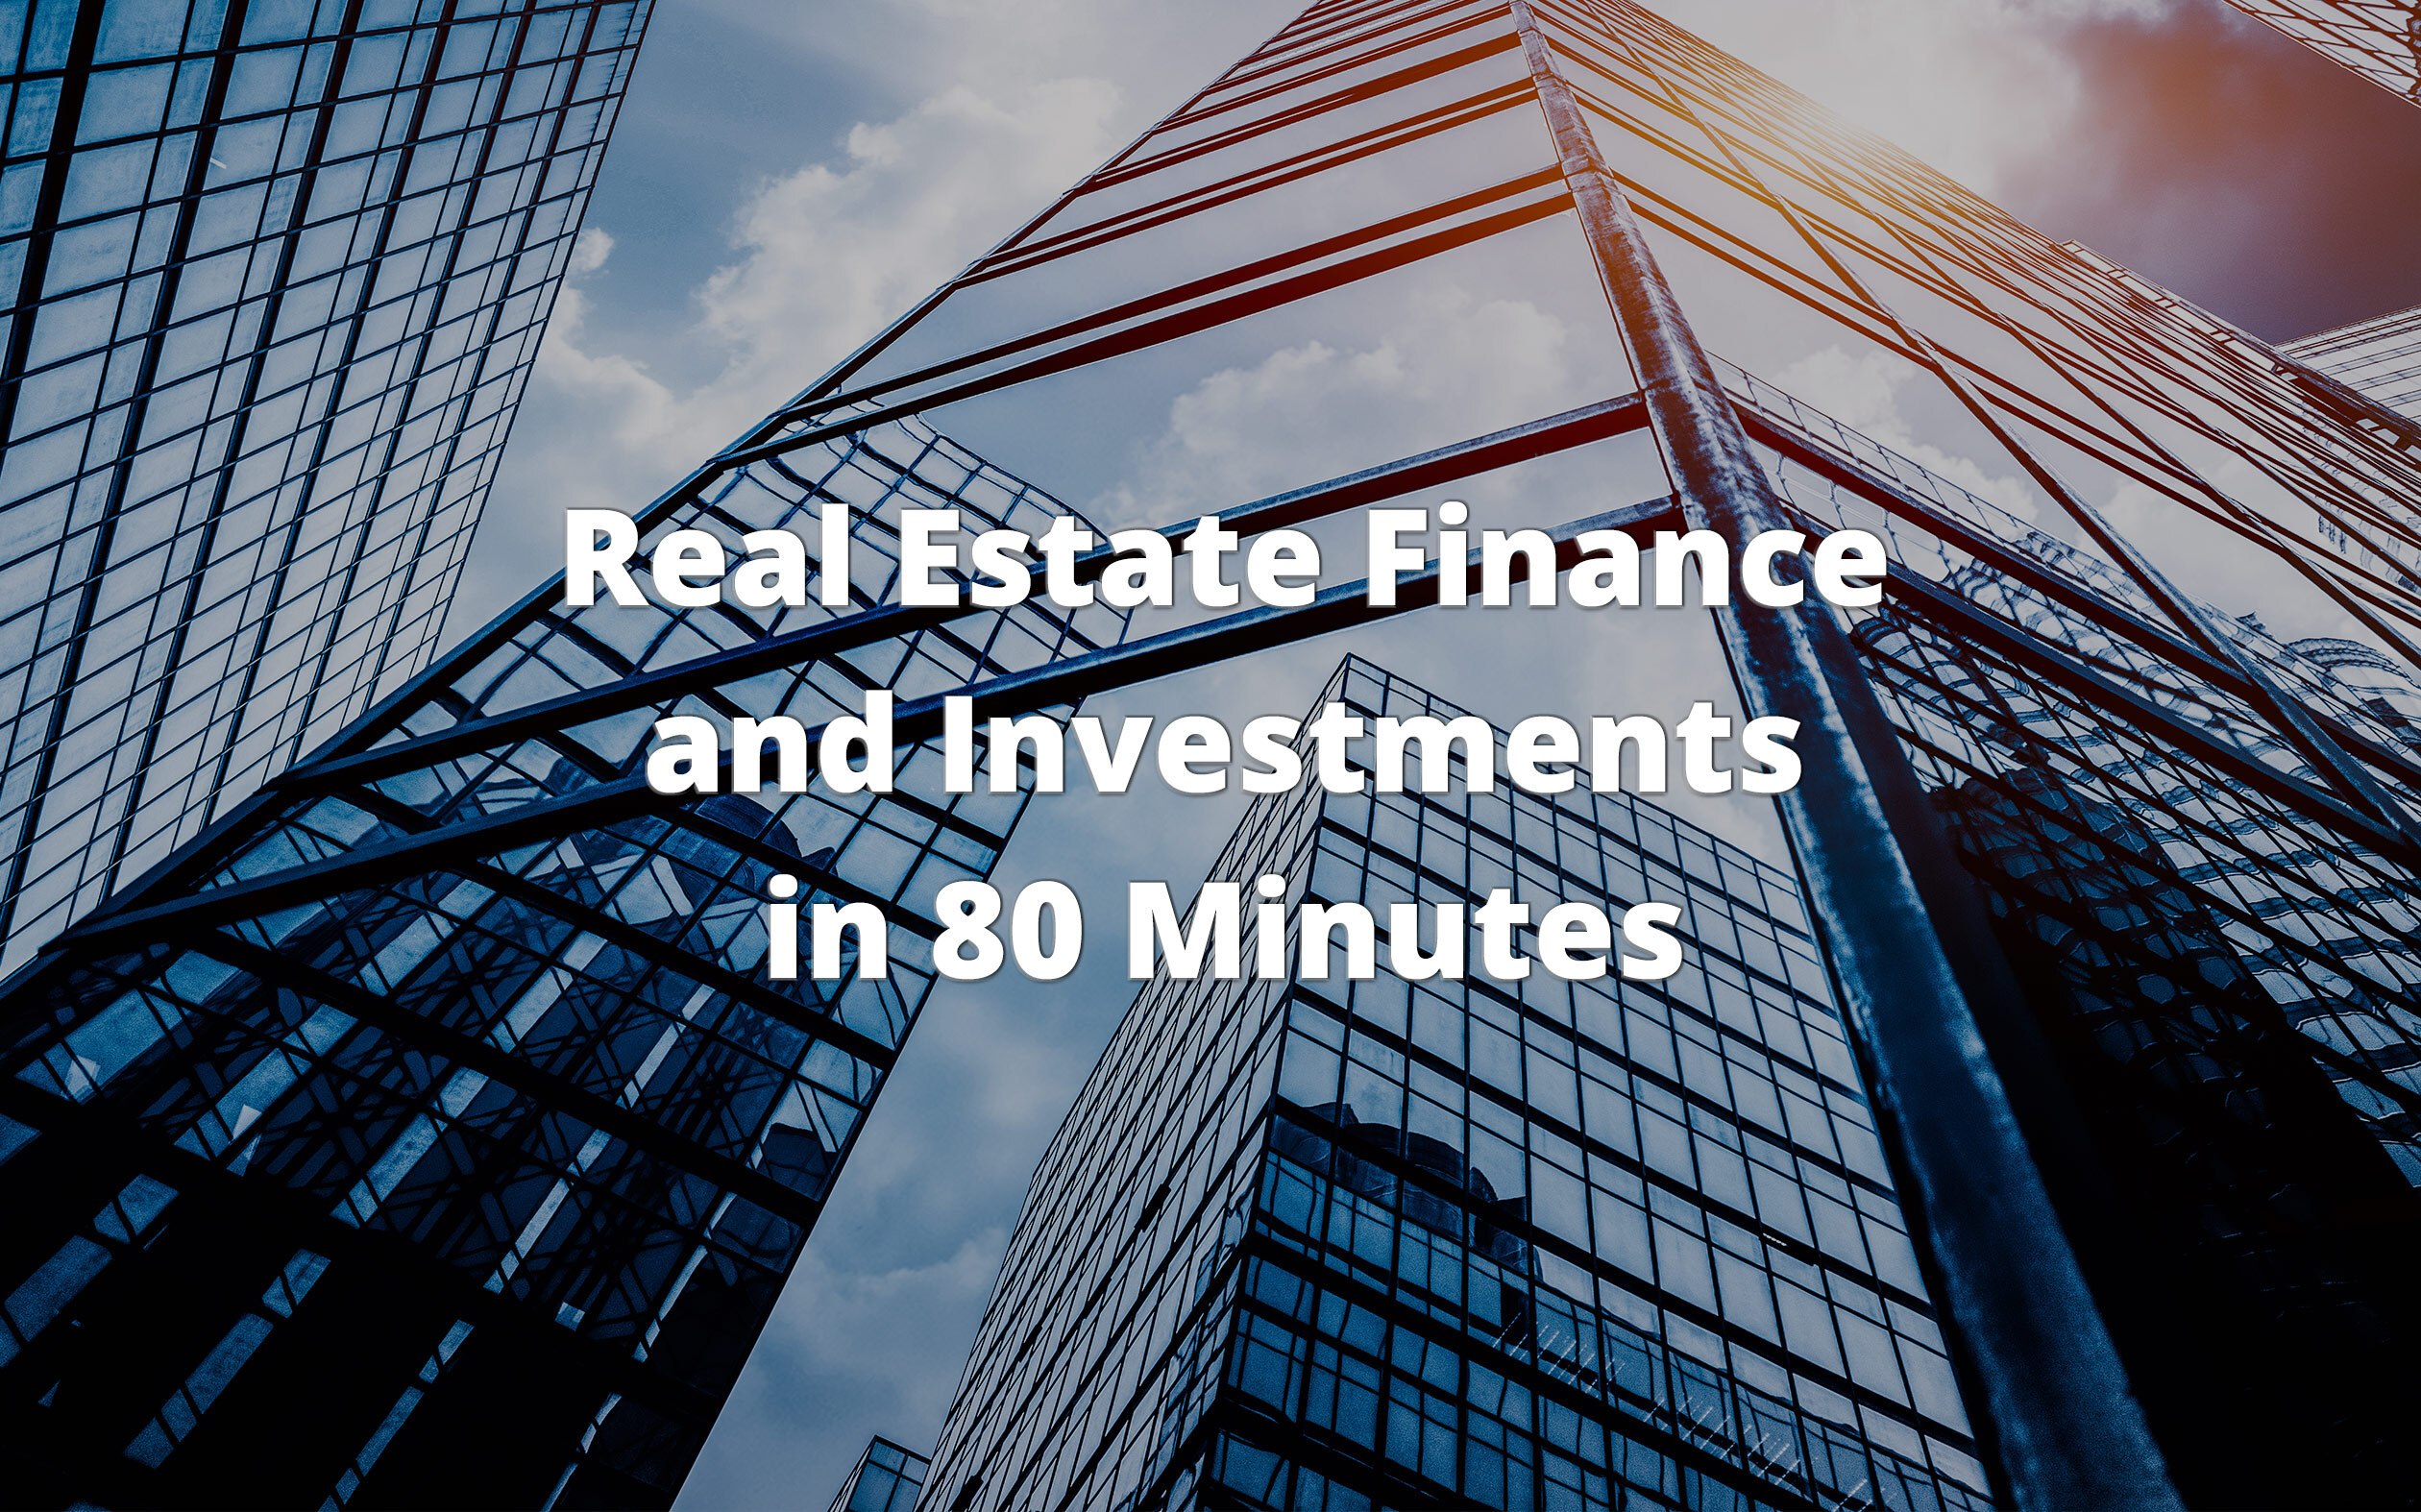 Real Estate Finance and Investments in 80 Minutes